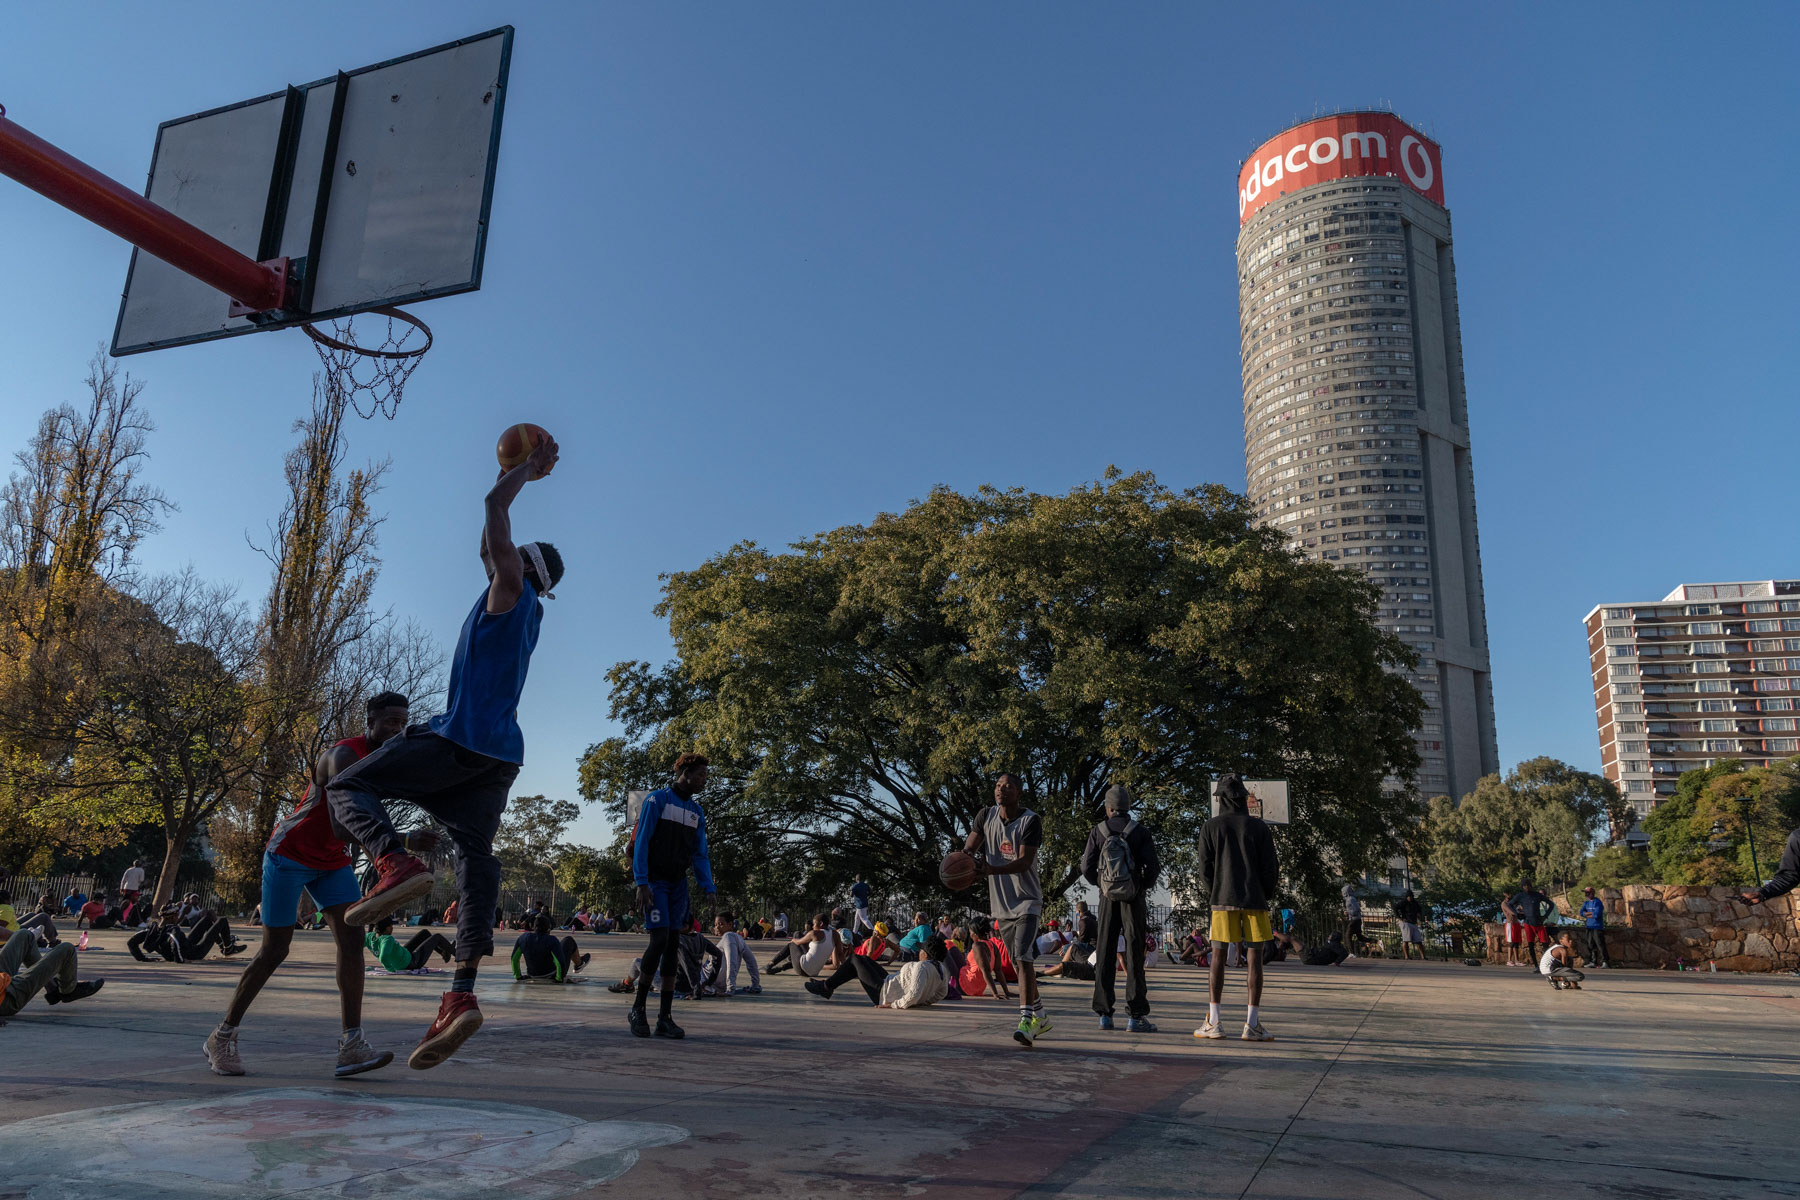 12 May 2020: An early morning game of basketball played in the shadow of Ponte Tower.